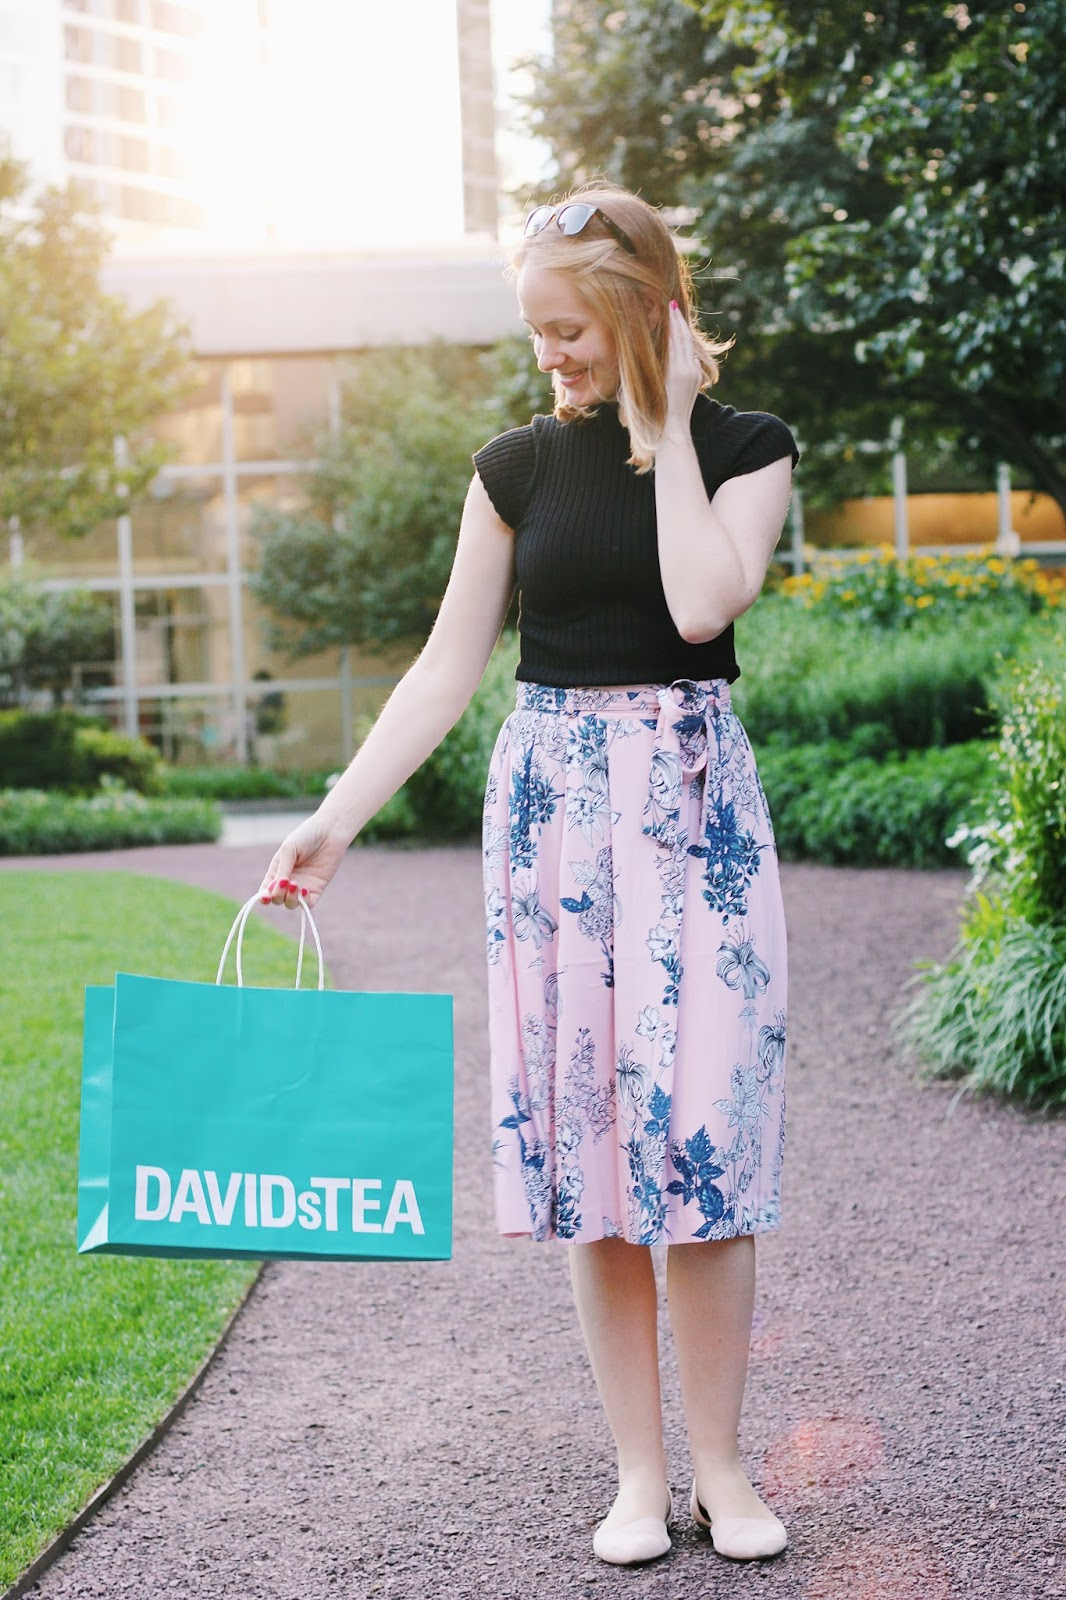 davidstea-prudential-center-boston